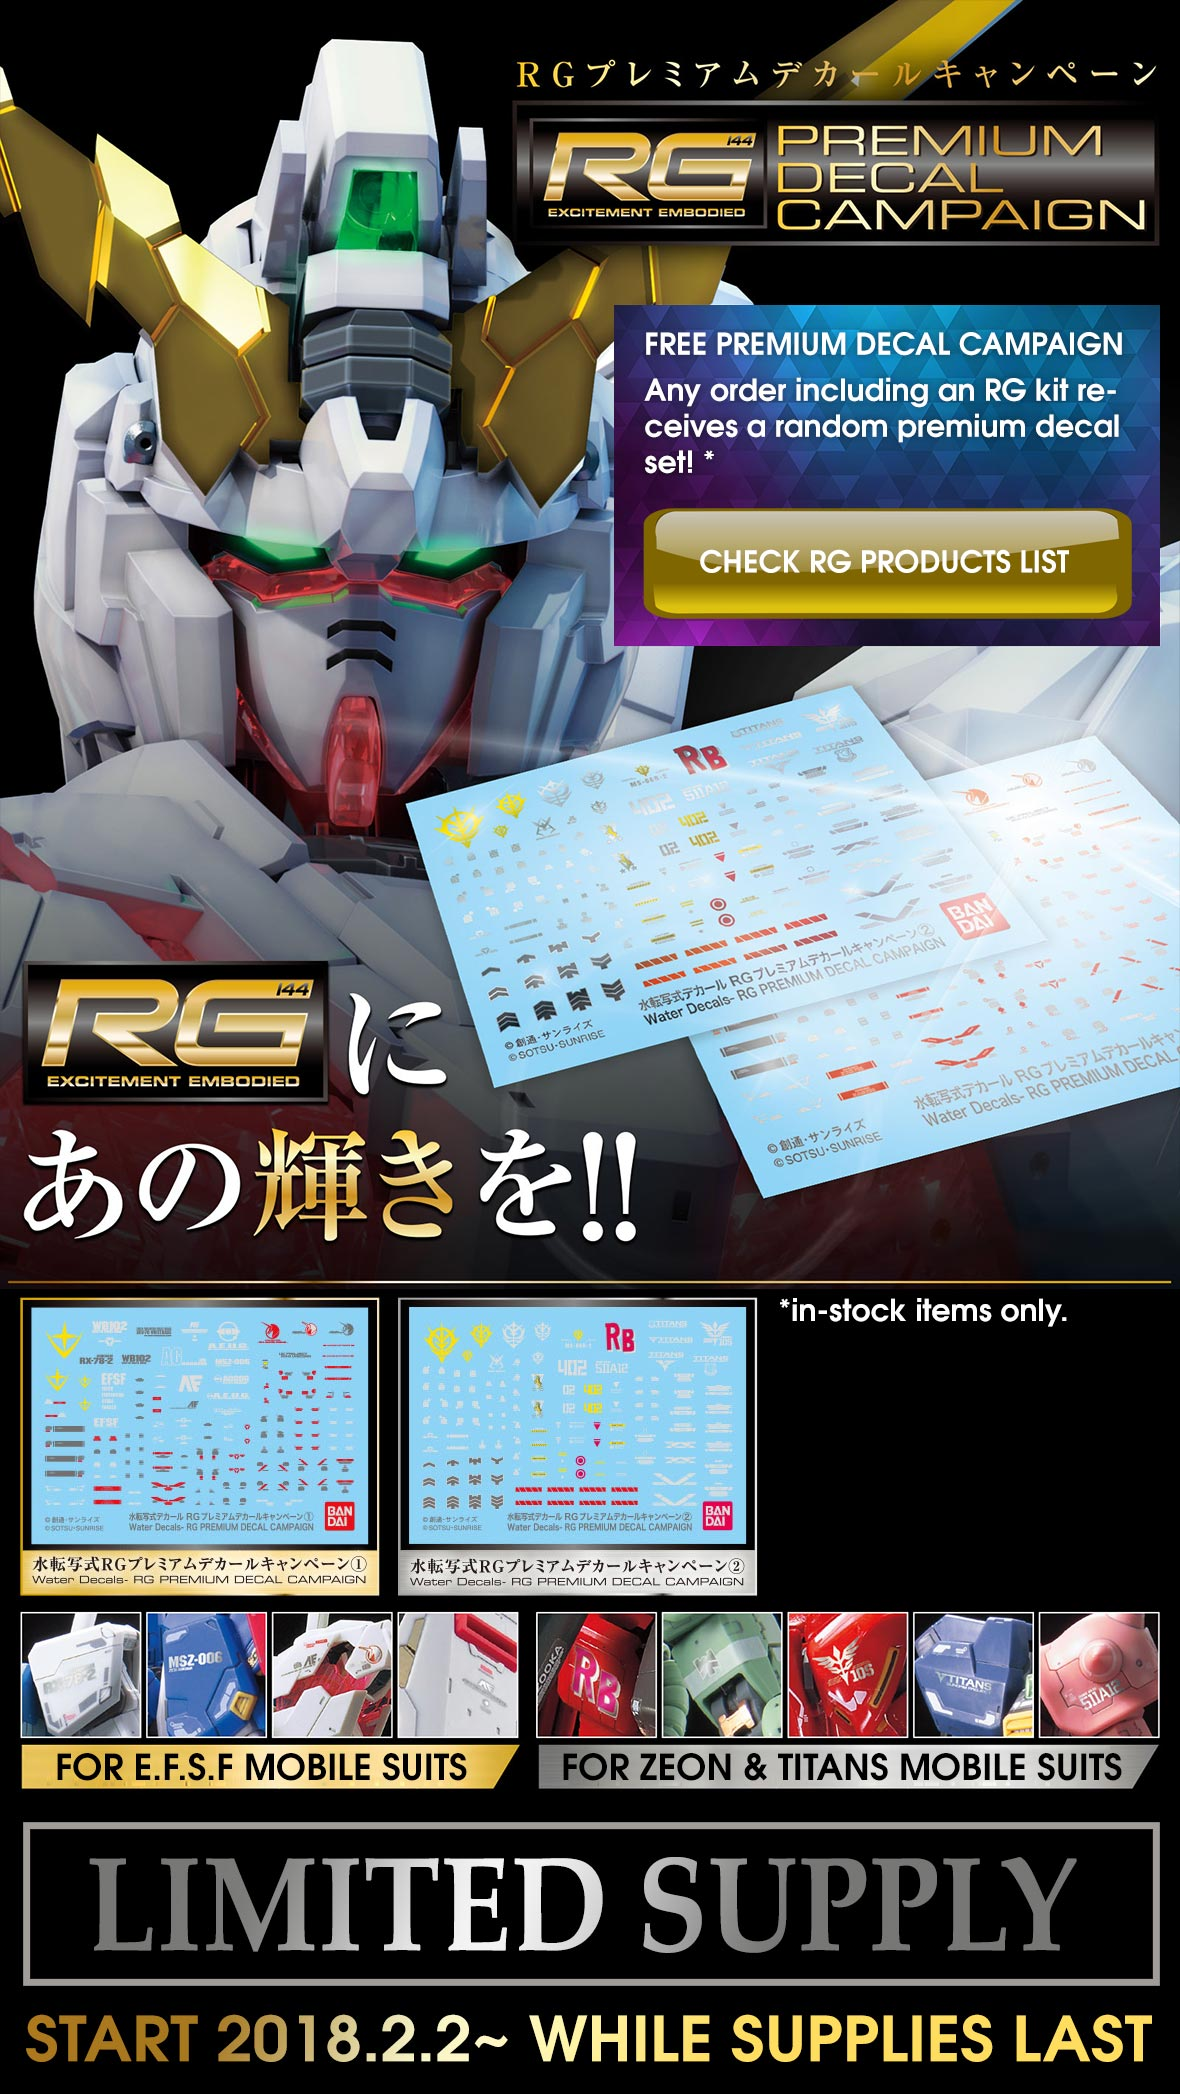 The Bandai RG Premium Decal Campaign is Here!